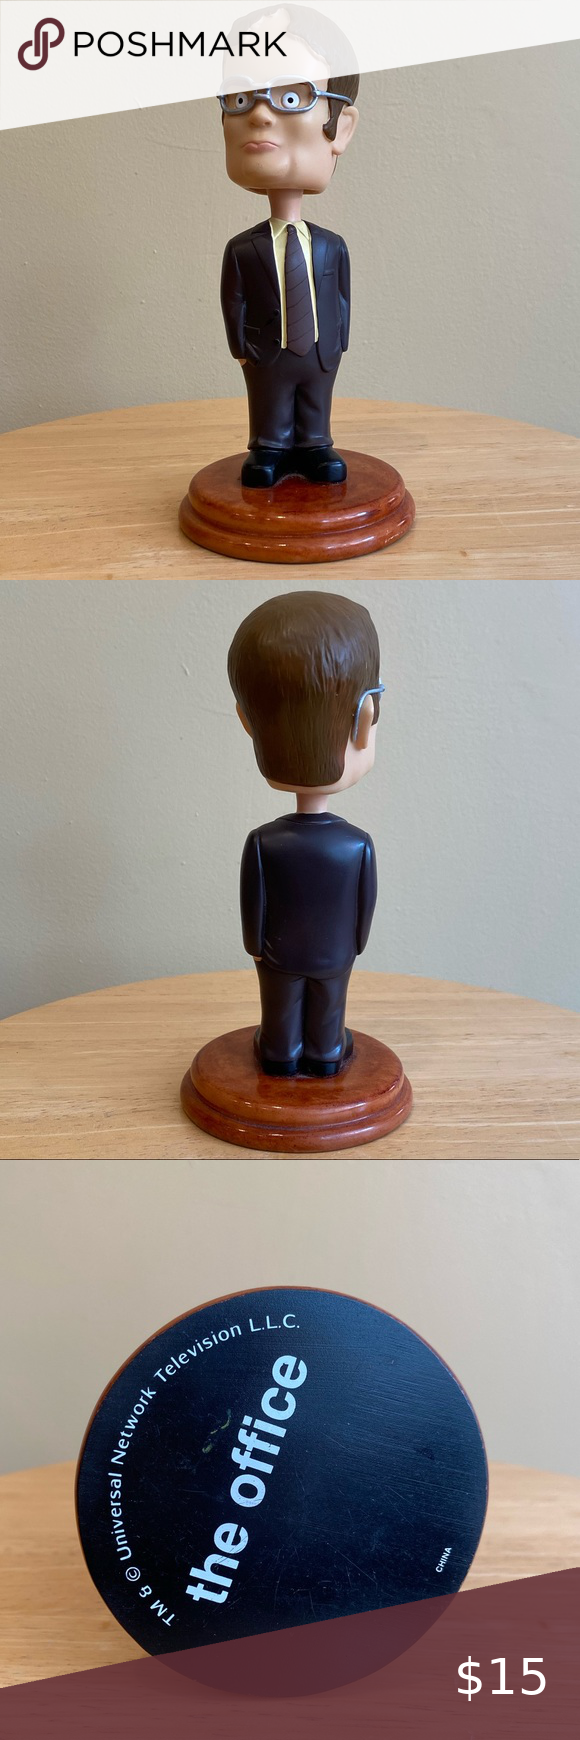 The Office Dwight Schrute Bobblehead The Office Dwight Dwight Schrute Bobblehead The Office Dwight Schrute